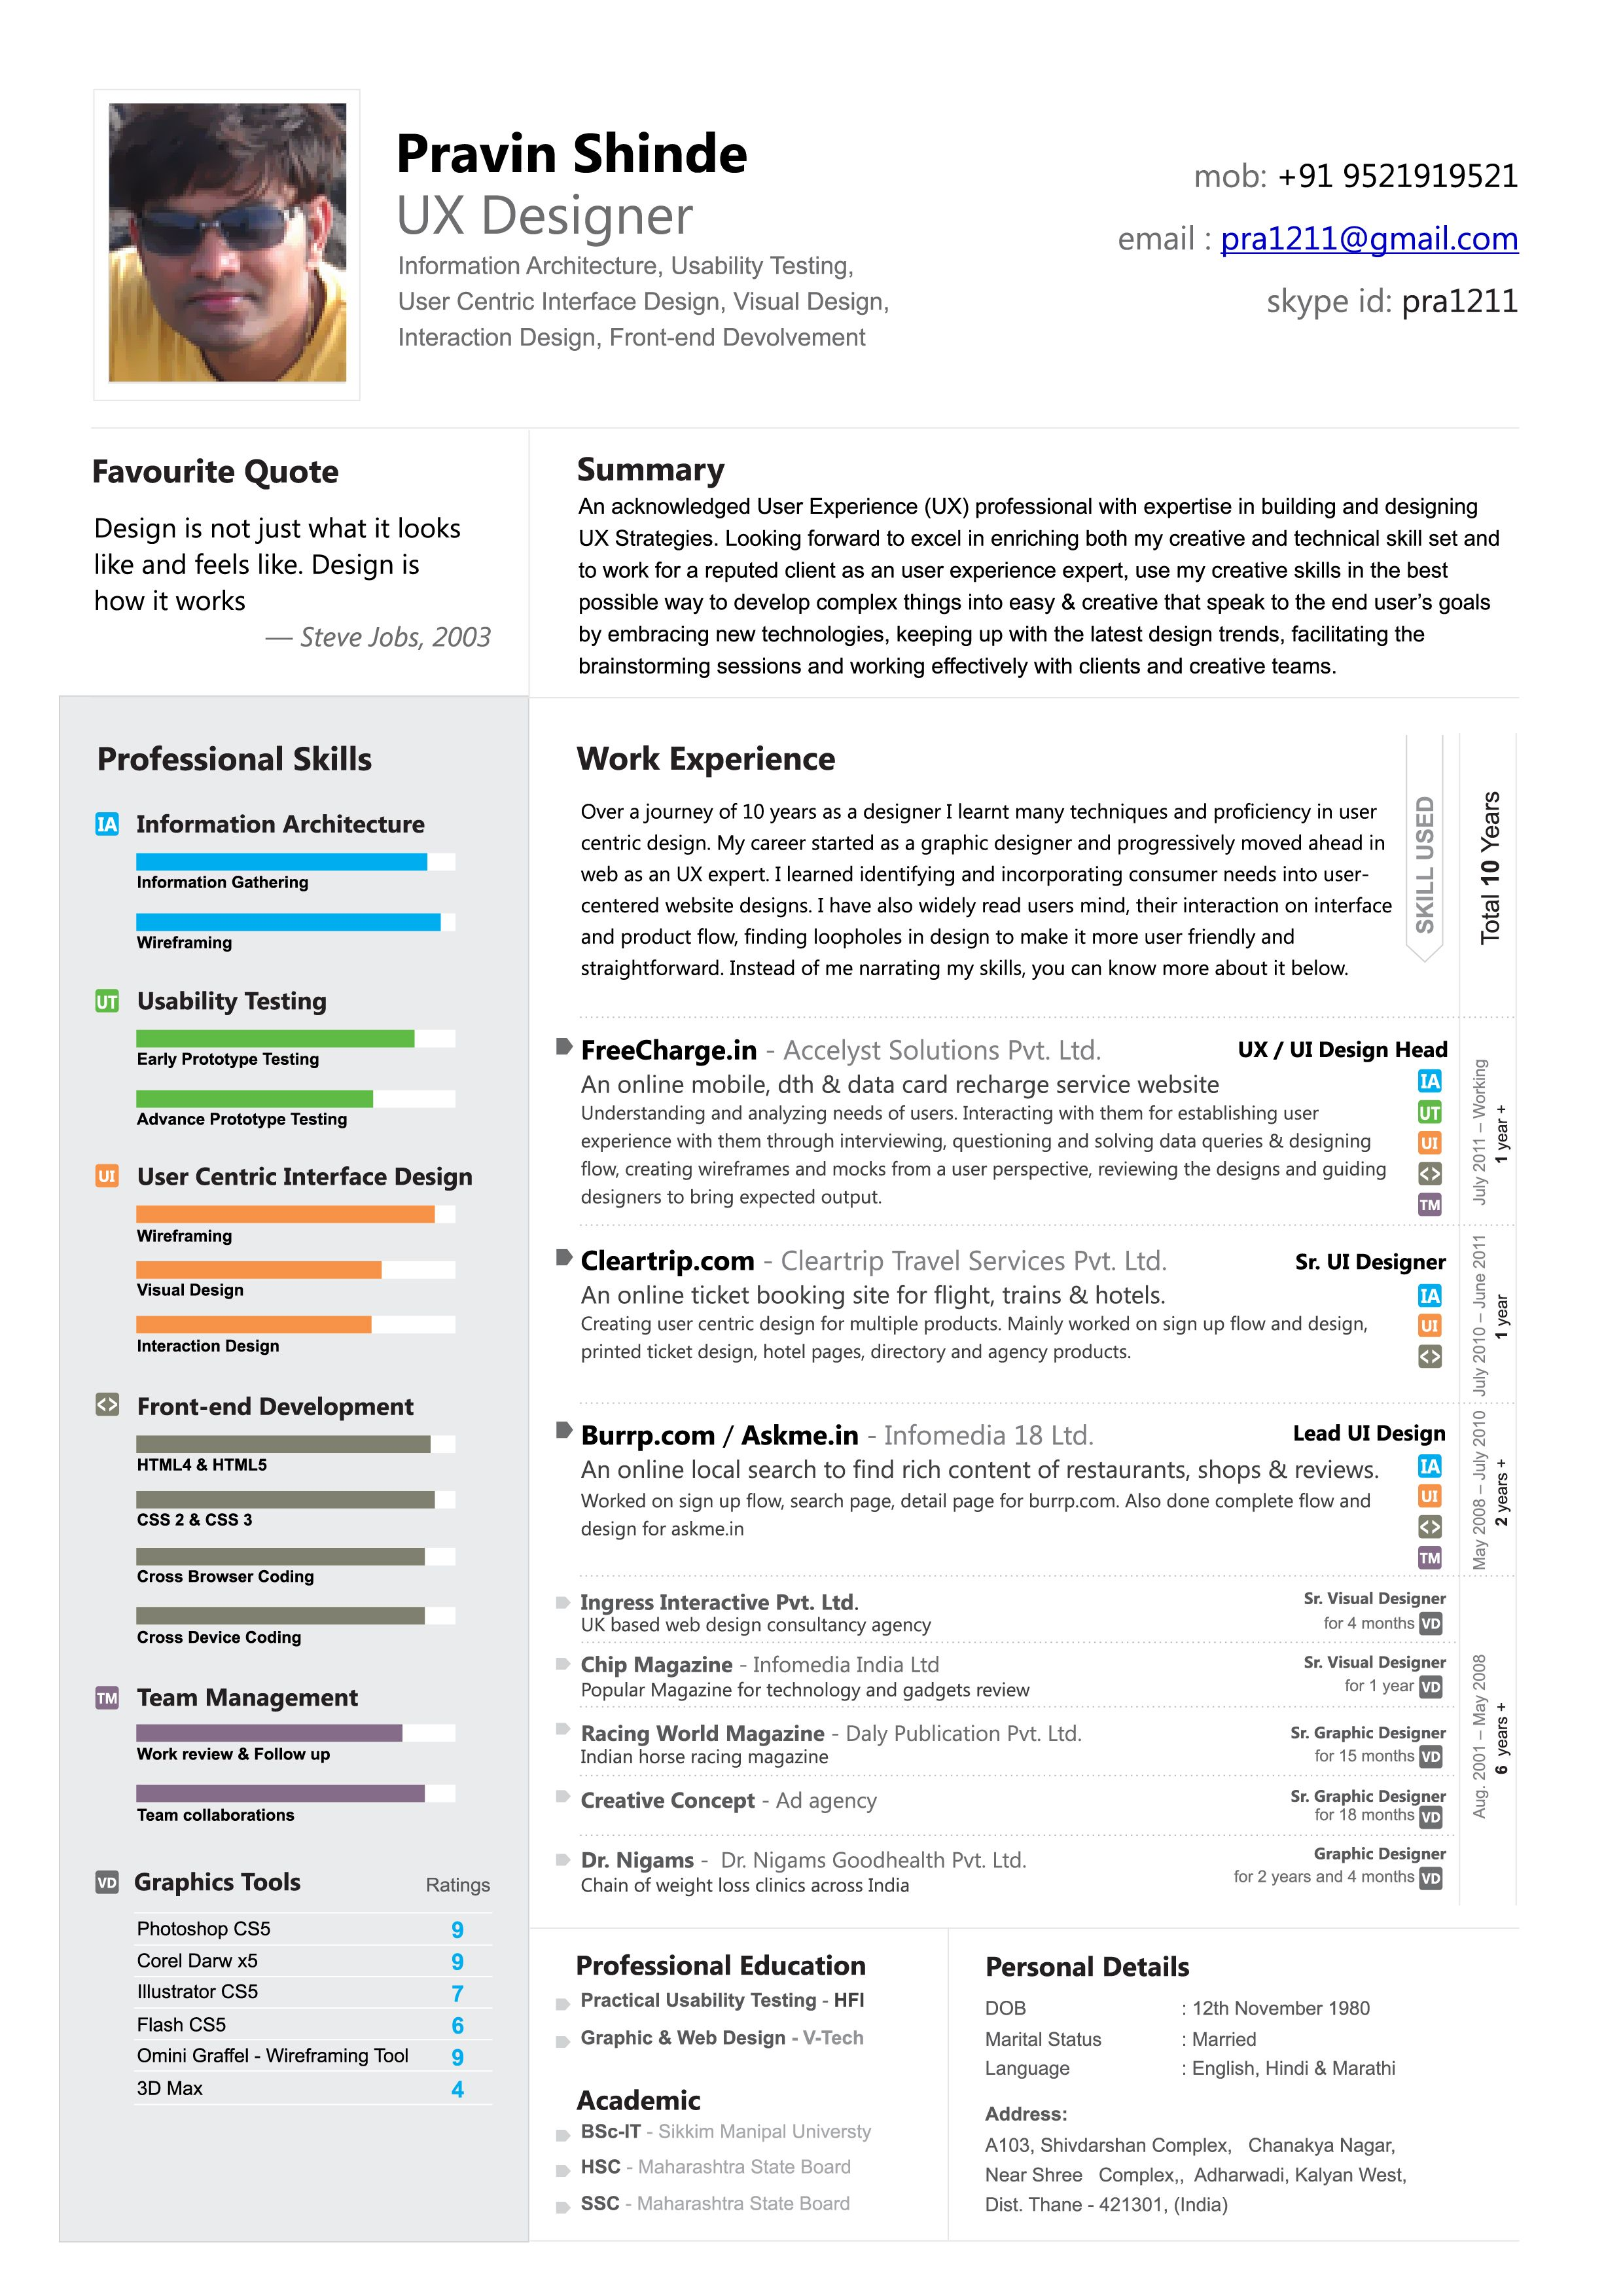 Ux Expert Cv 01 Jpg 2480 3508 Resume Design Graphic Design Resume Good Resume Examples